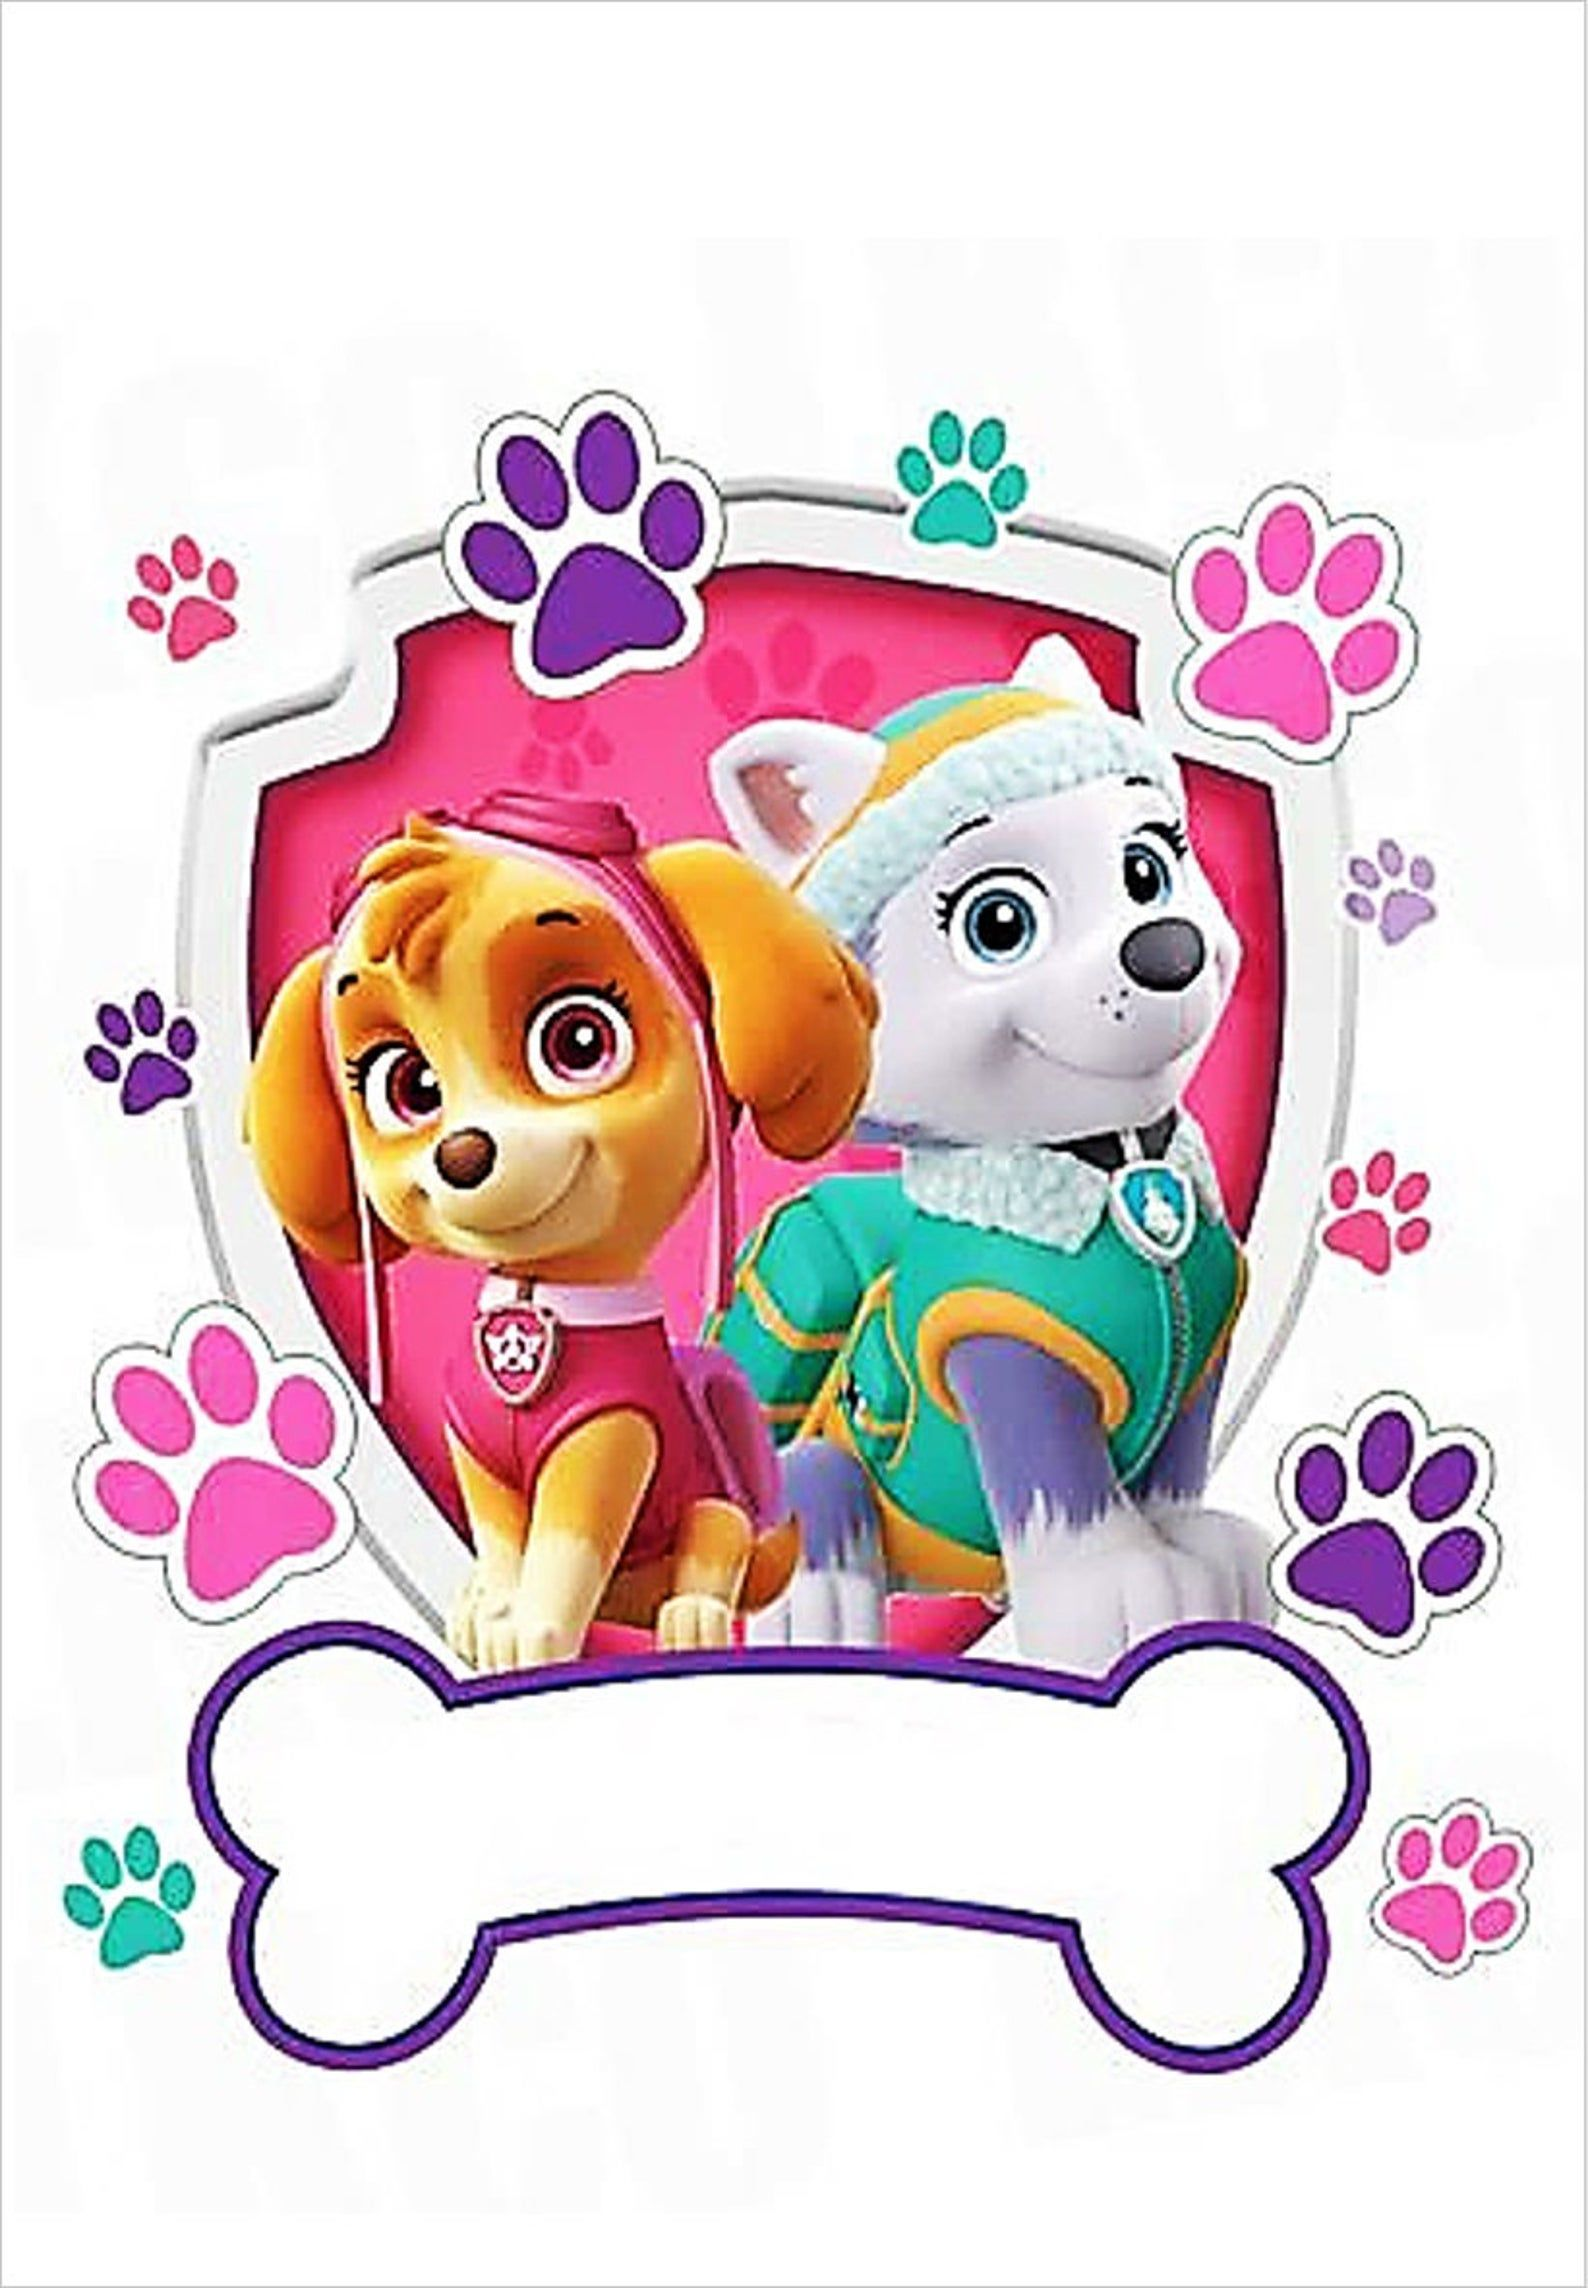 Paw Patrol Personalised Wafer Cake Topper A4 Size In 2021 Paw Patrol Birthday Paw Patrol Birthday Girl Paw Patrol Birthday Party